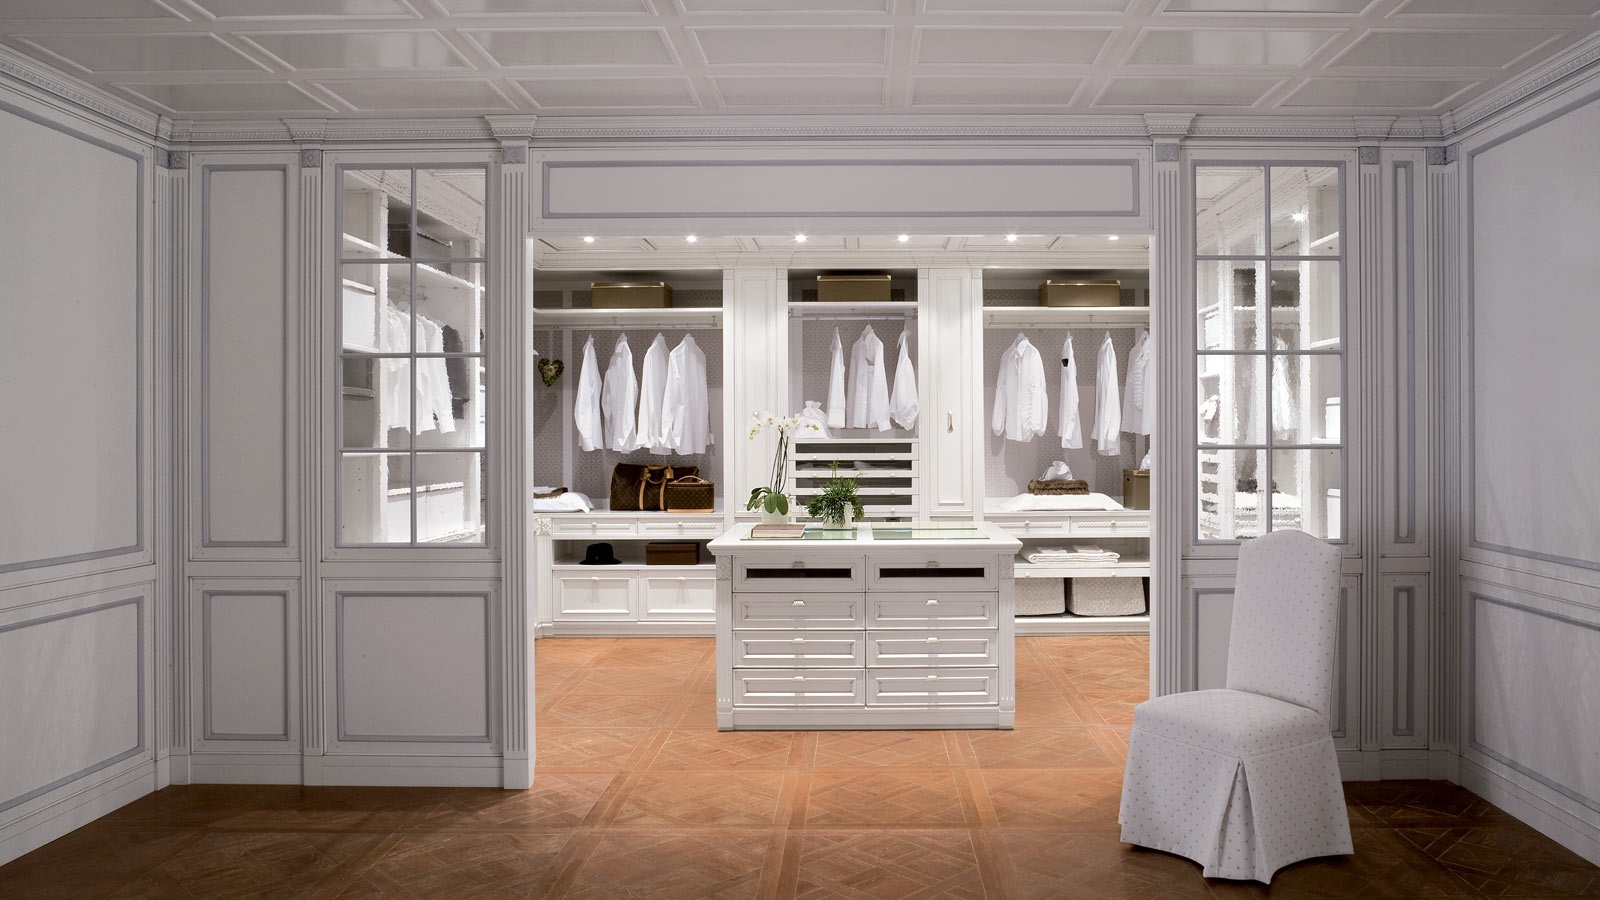 pleasing-winning-furniture-awesome-white-walk-in-closet-design-inspiration-with-white-clothes-and-brown-floor-tile-best-walk-in-closet-design-inspirat